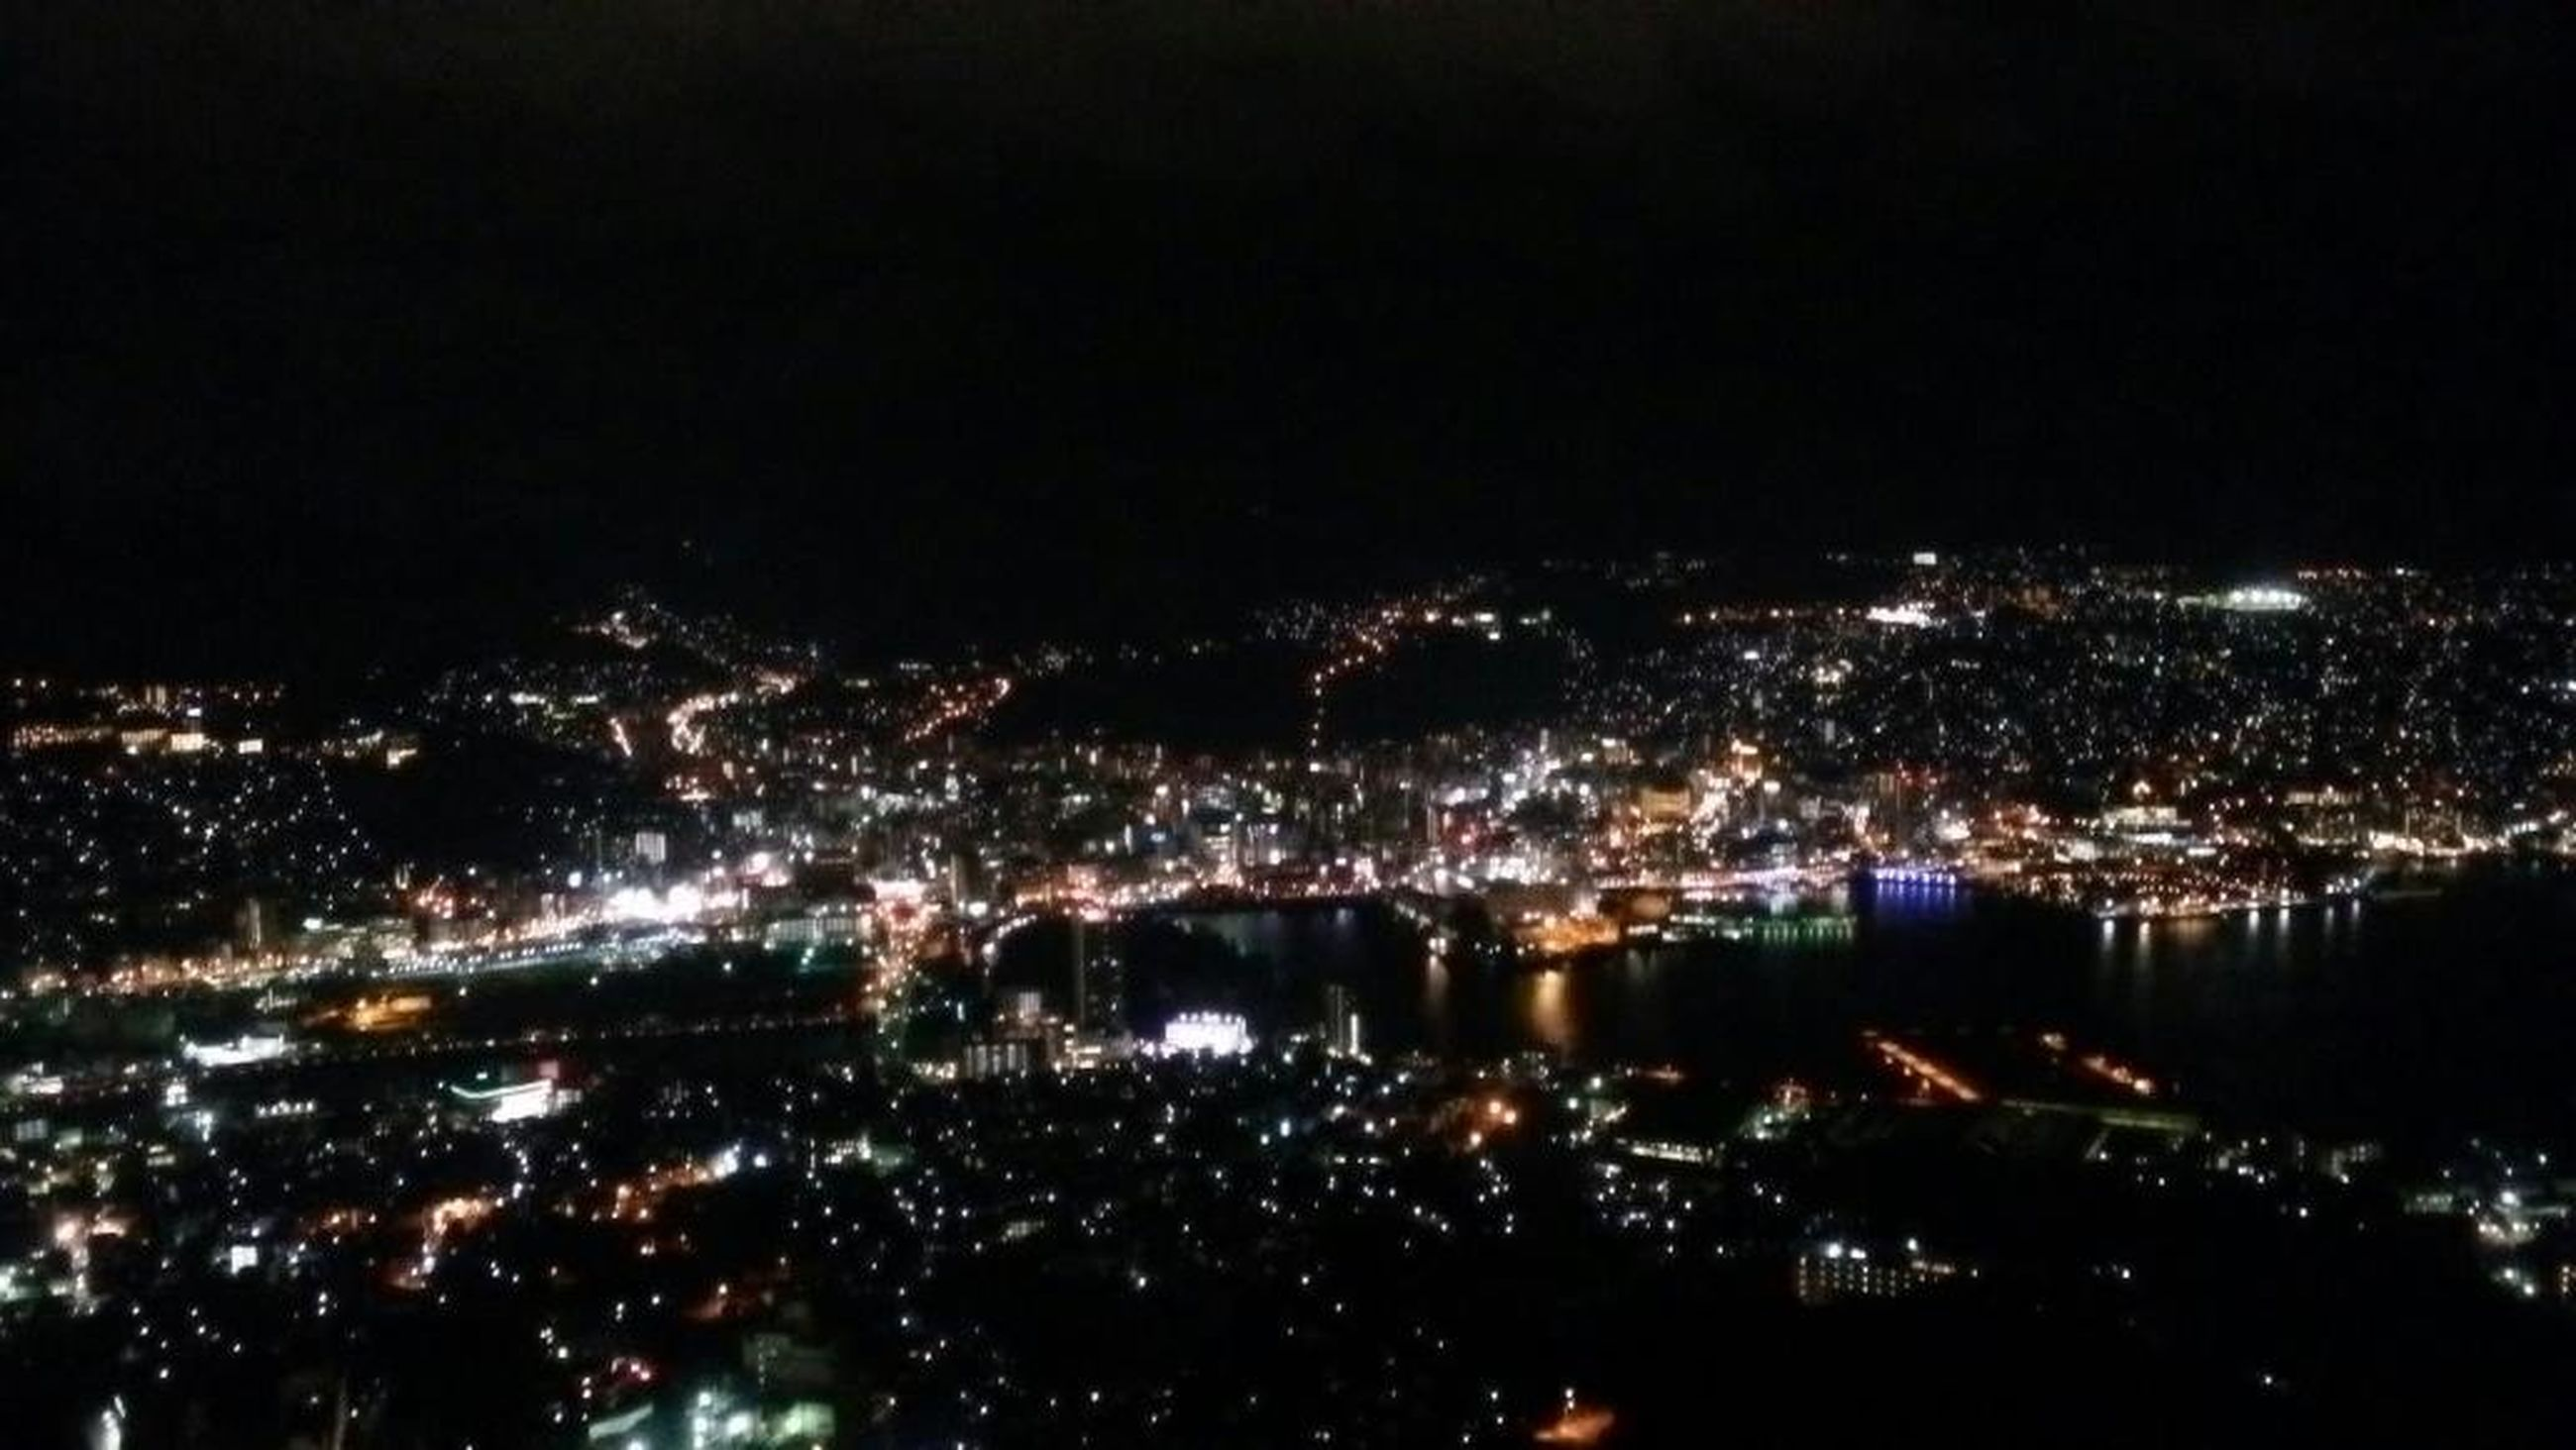 illuminated, night, cityscape, city, crowded, architecture, built structure, high angle view, aerial view, building exterior, water, river, residential district, city life, sky, copy space, clear sky, residential building, outdoors, residential structure